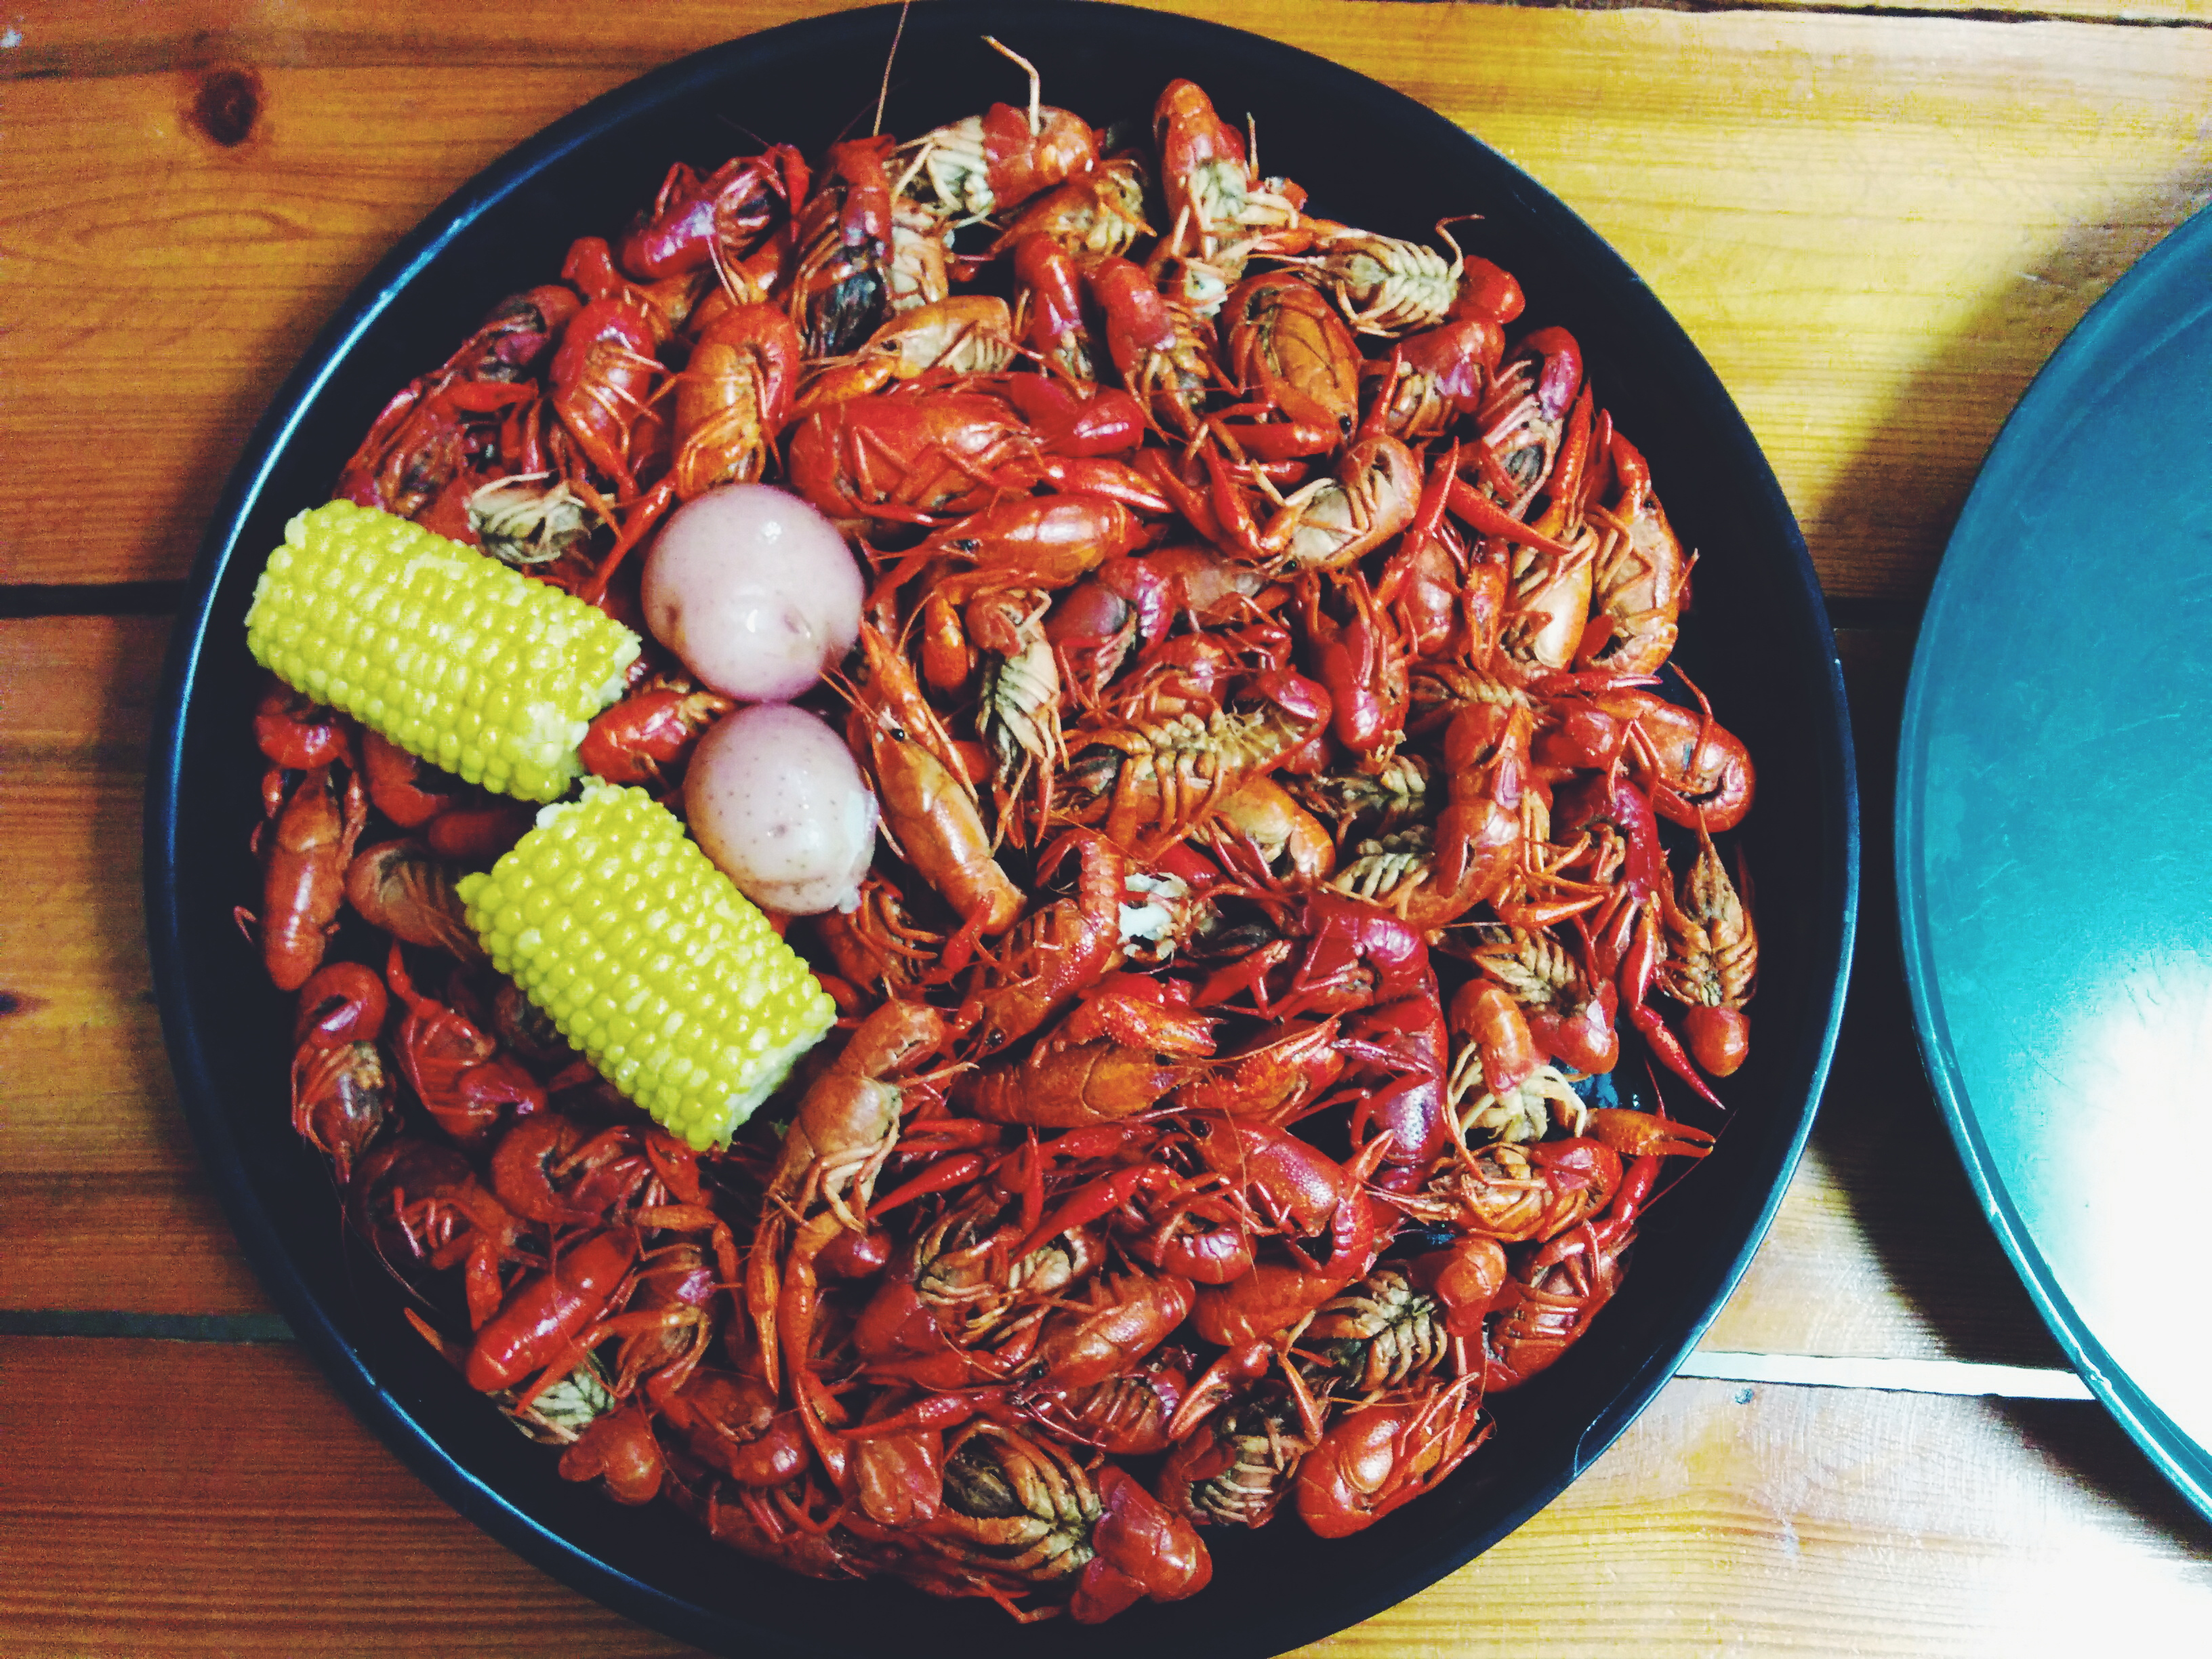 Crawfish, Corn, Potatoes